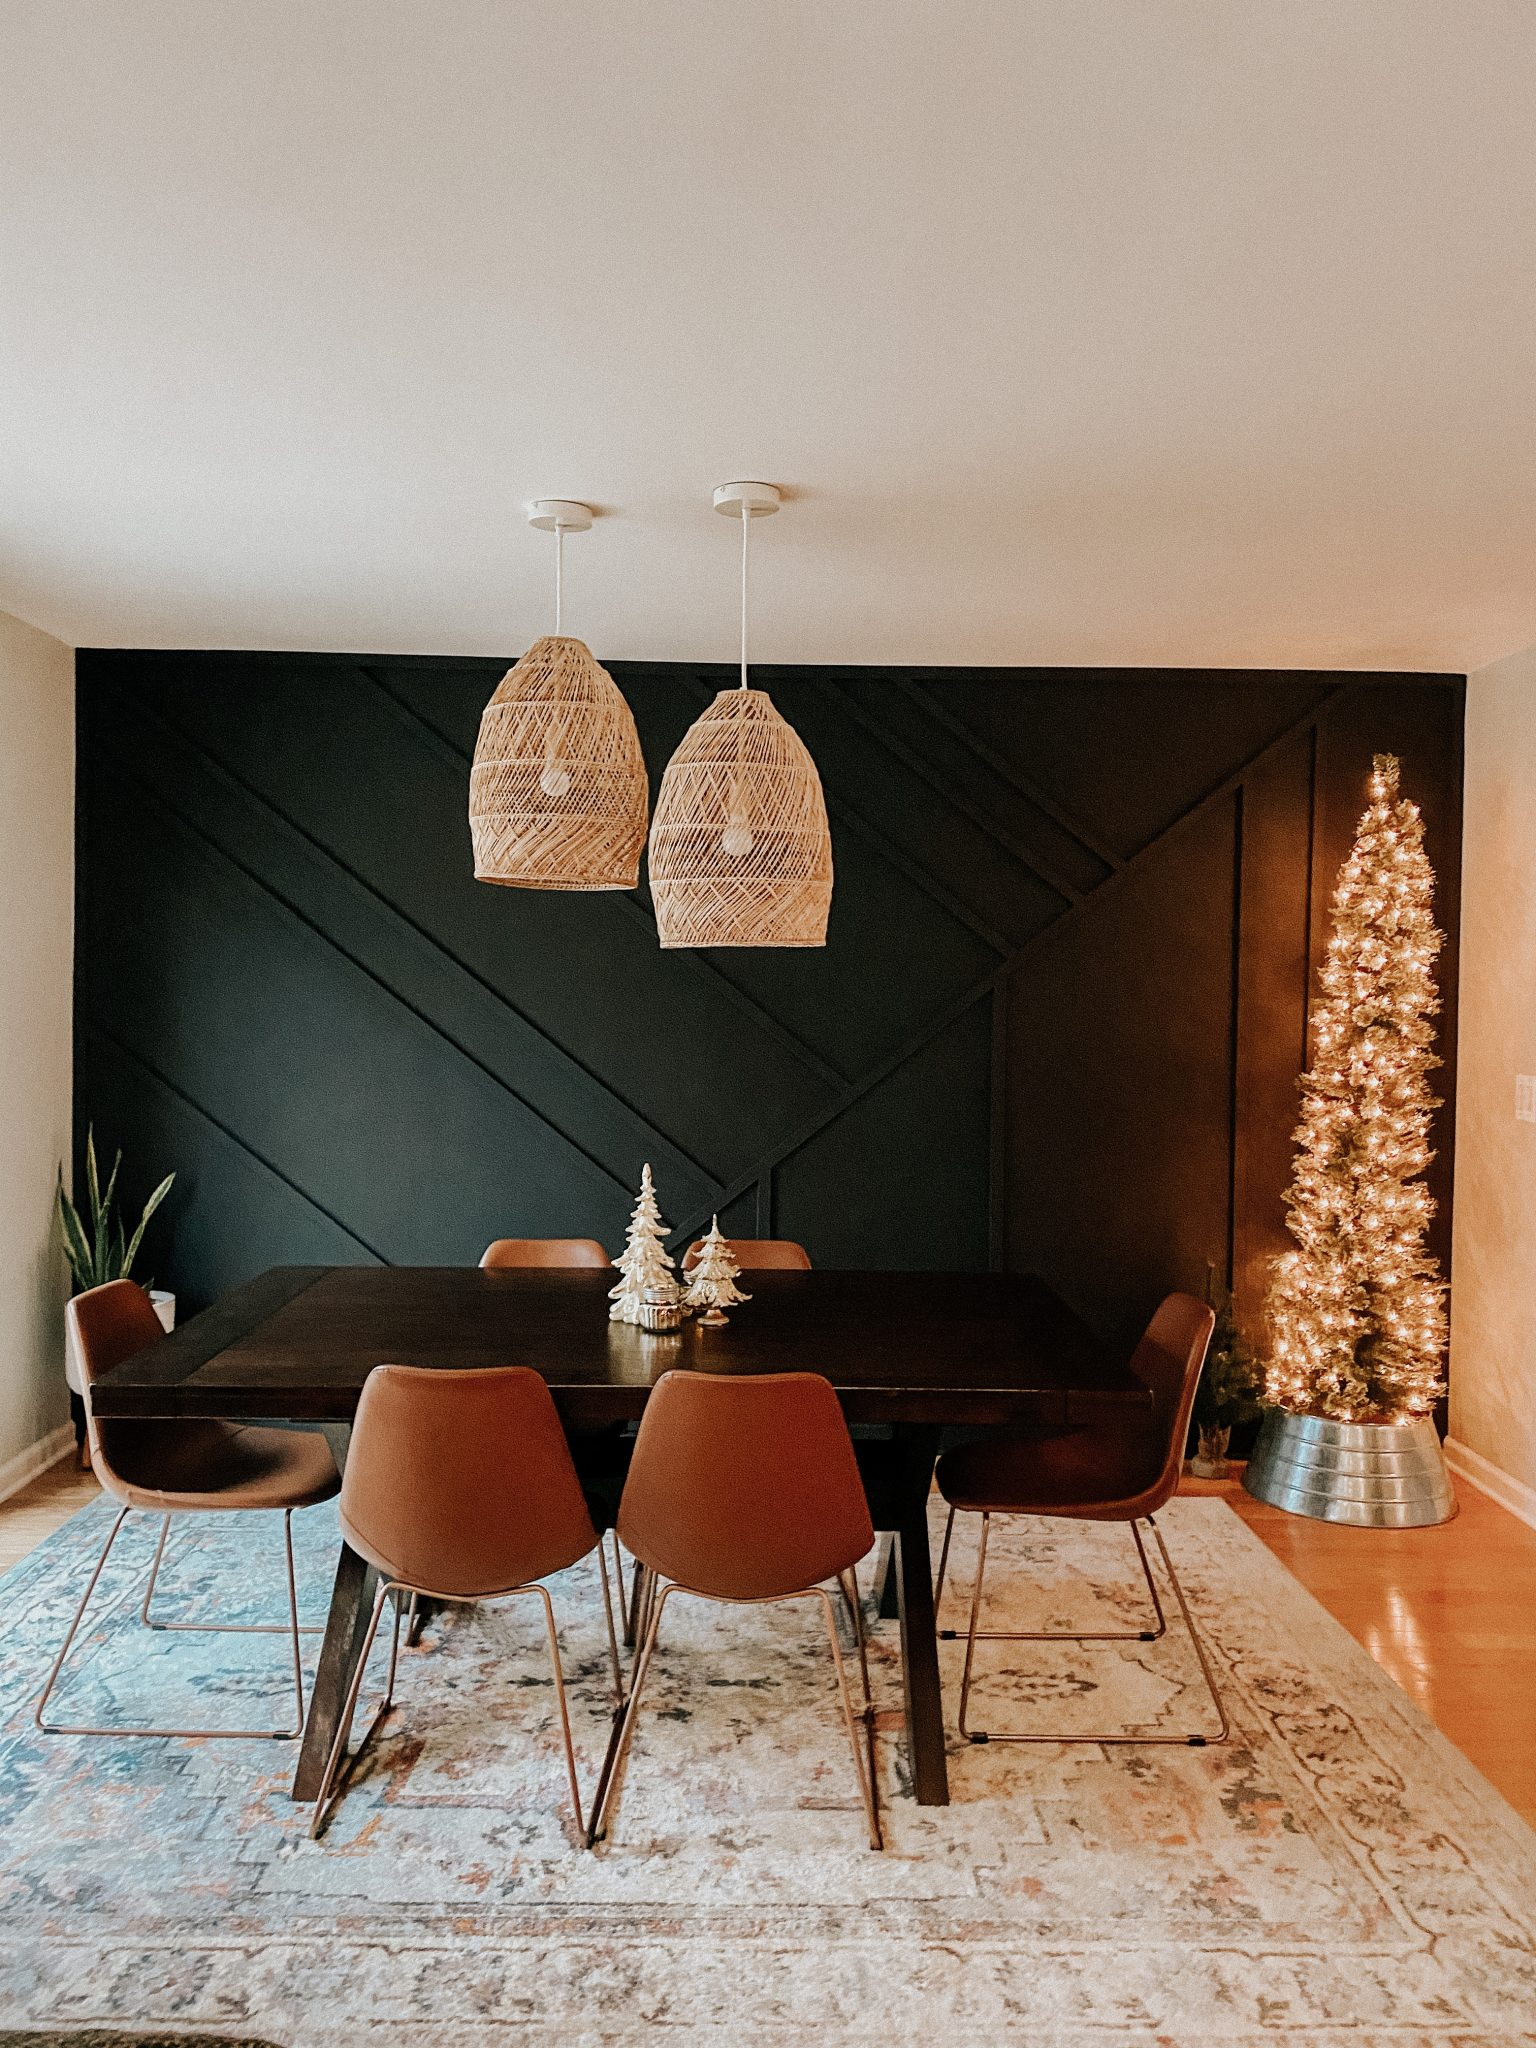 Christmas Home Tour | Daily Splendor Life and Style Blog | Christmas Dining Room #penciltree #accentwall #woodaccentwall #bohodiningroom #hyggehome